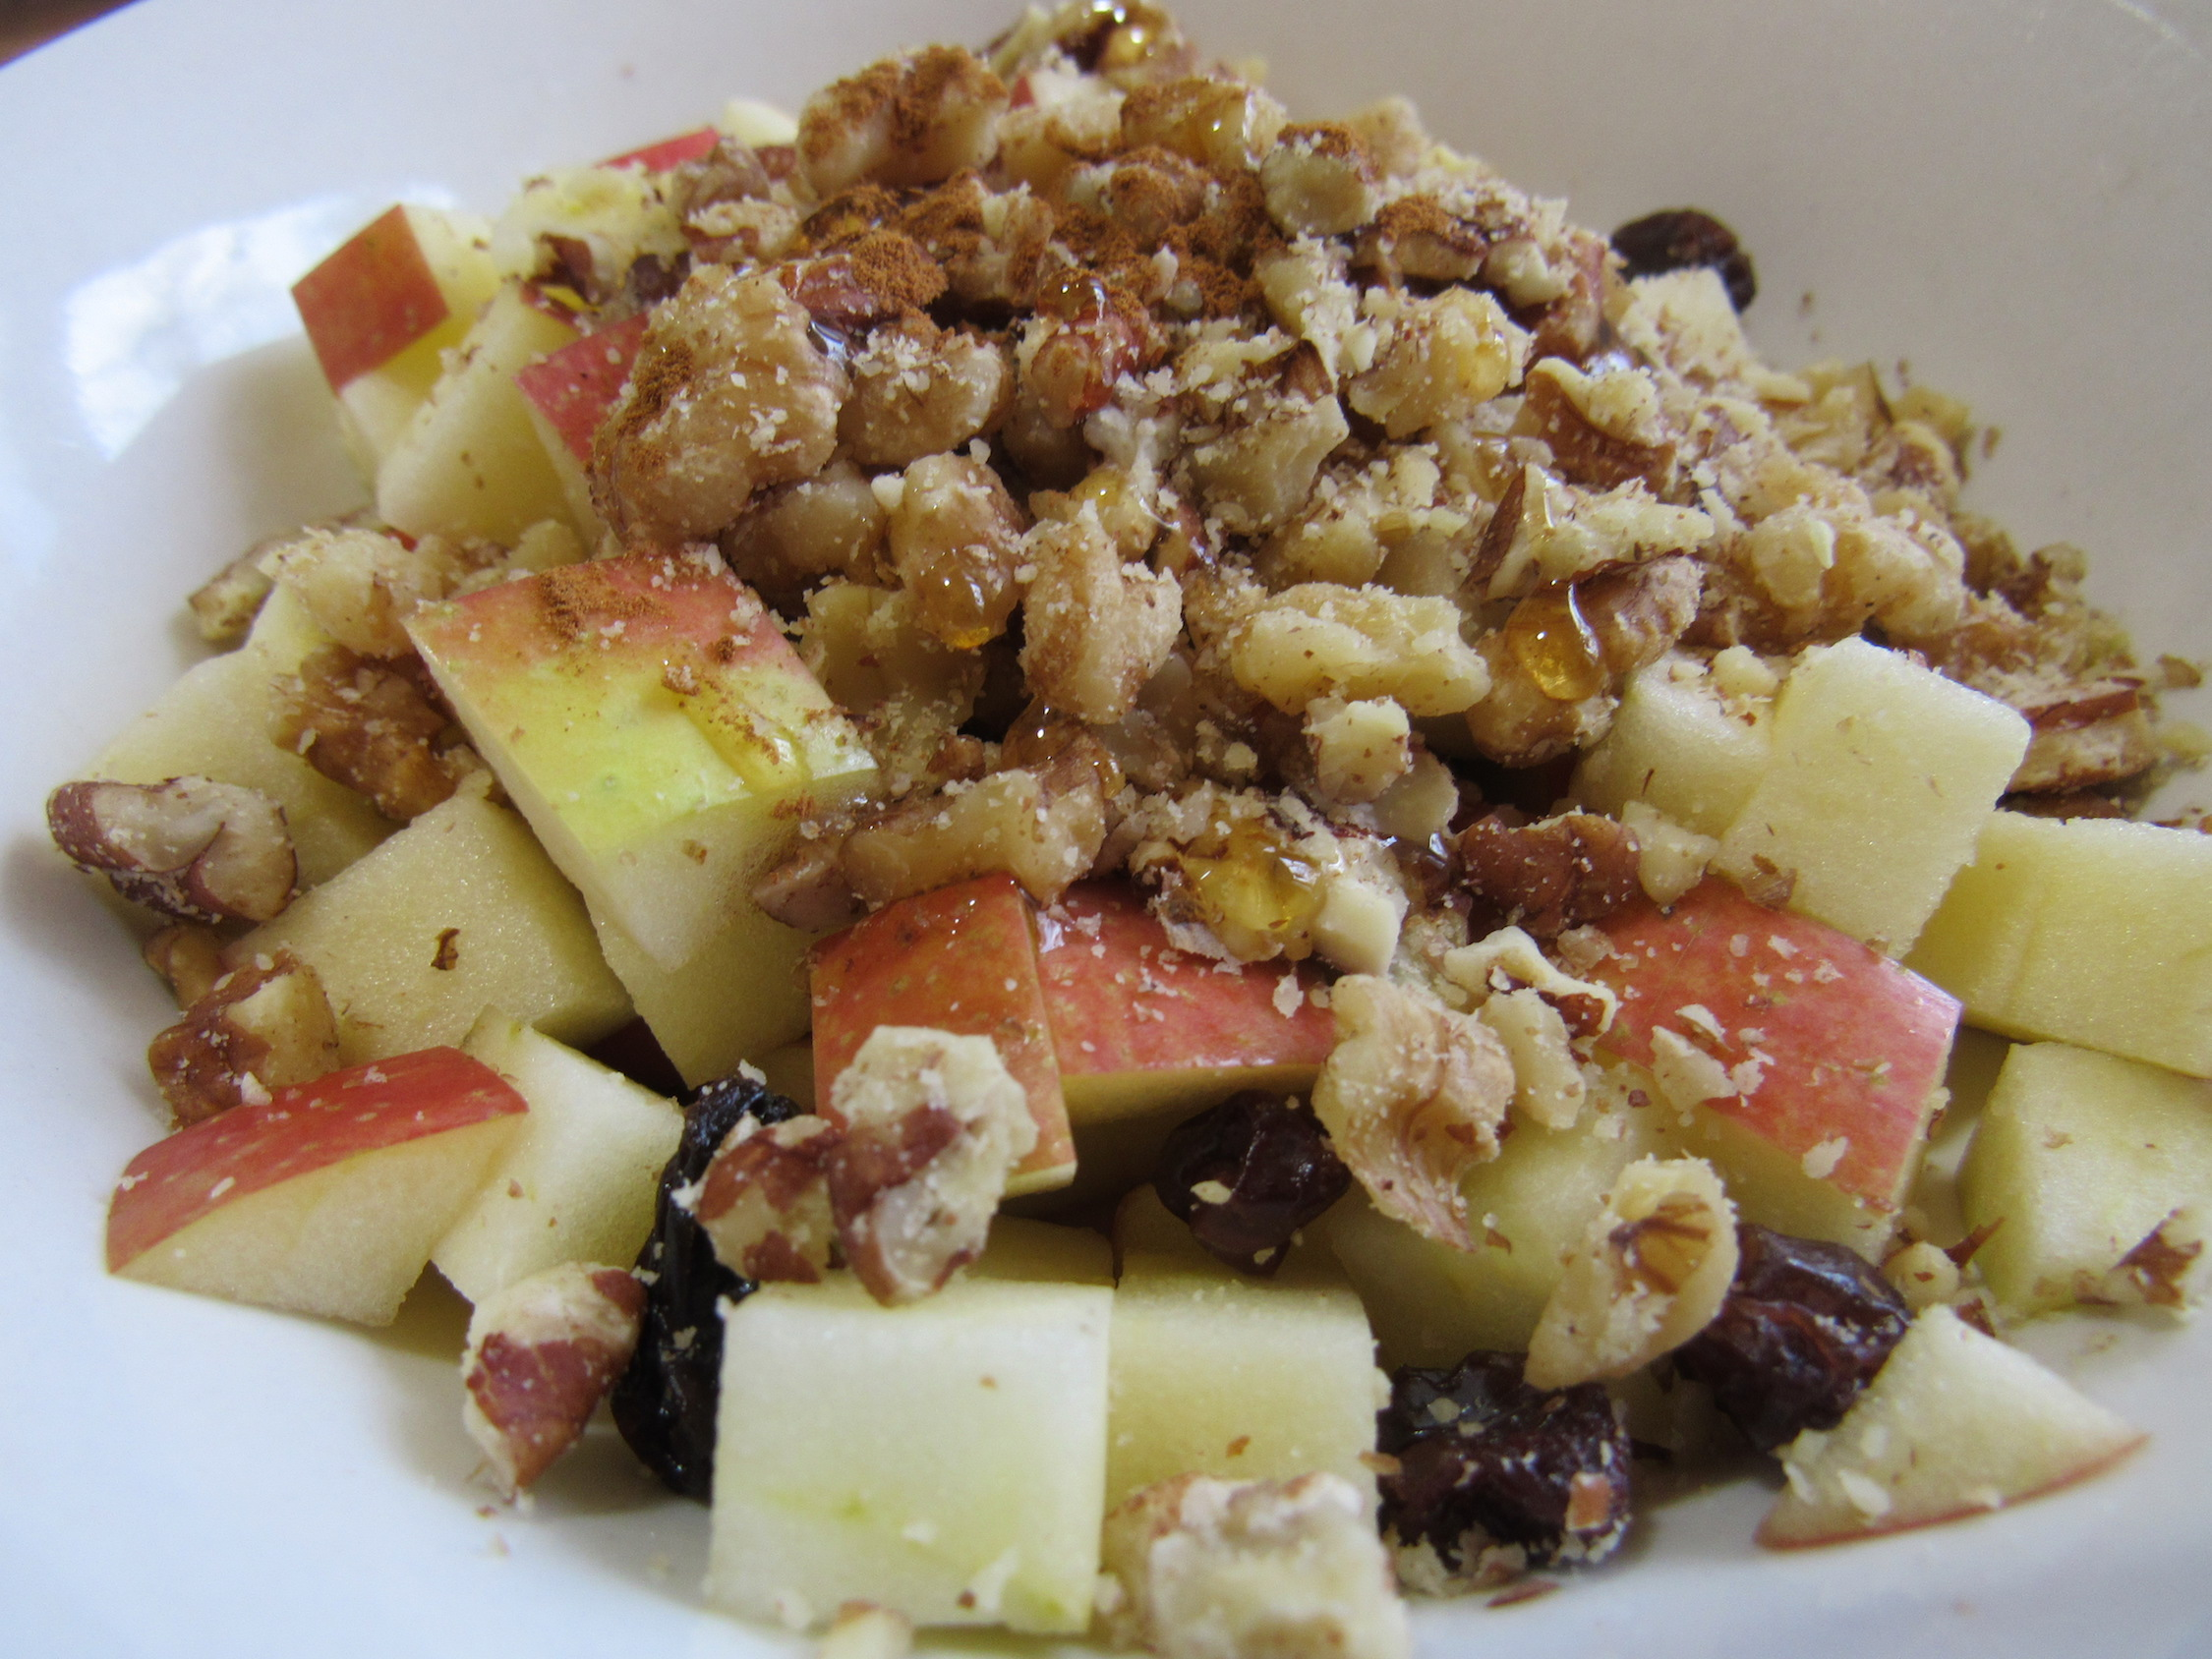 Balanced Bowl: Apple, Crushed Nuts, Raisins, and Nut Butter